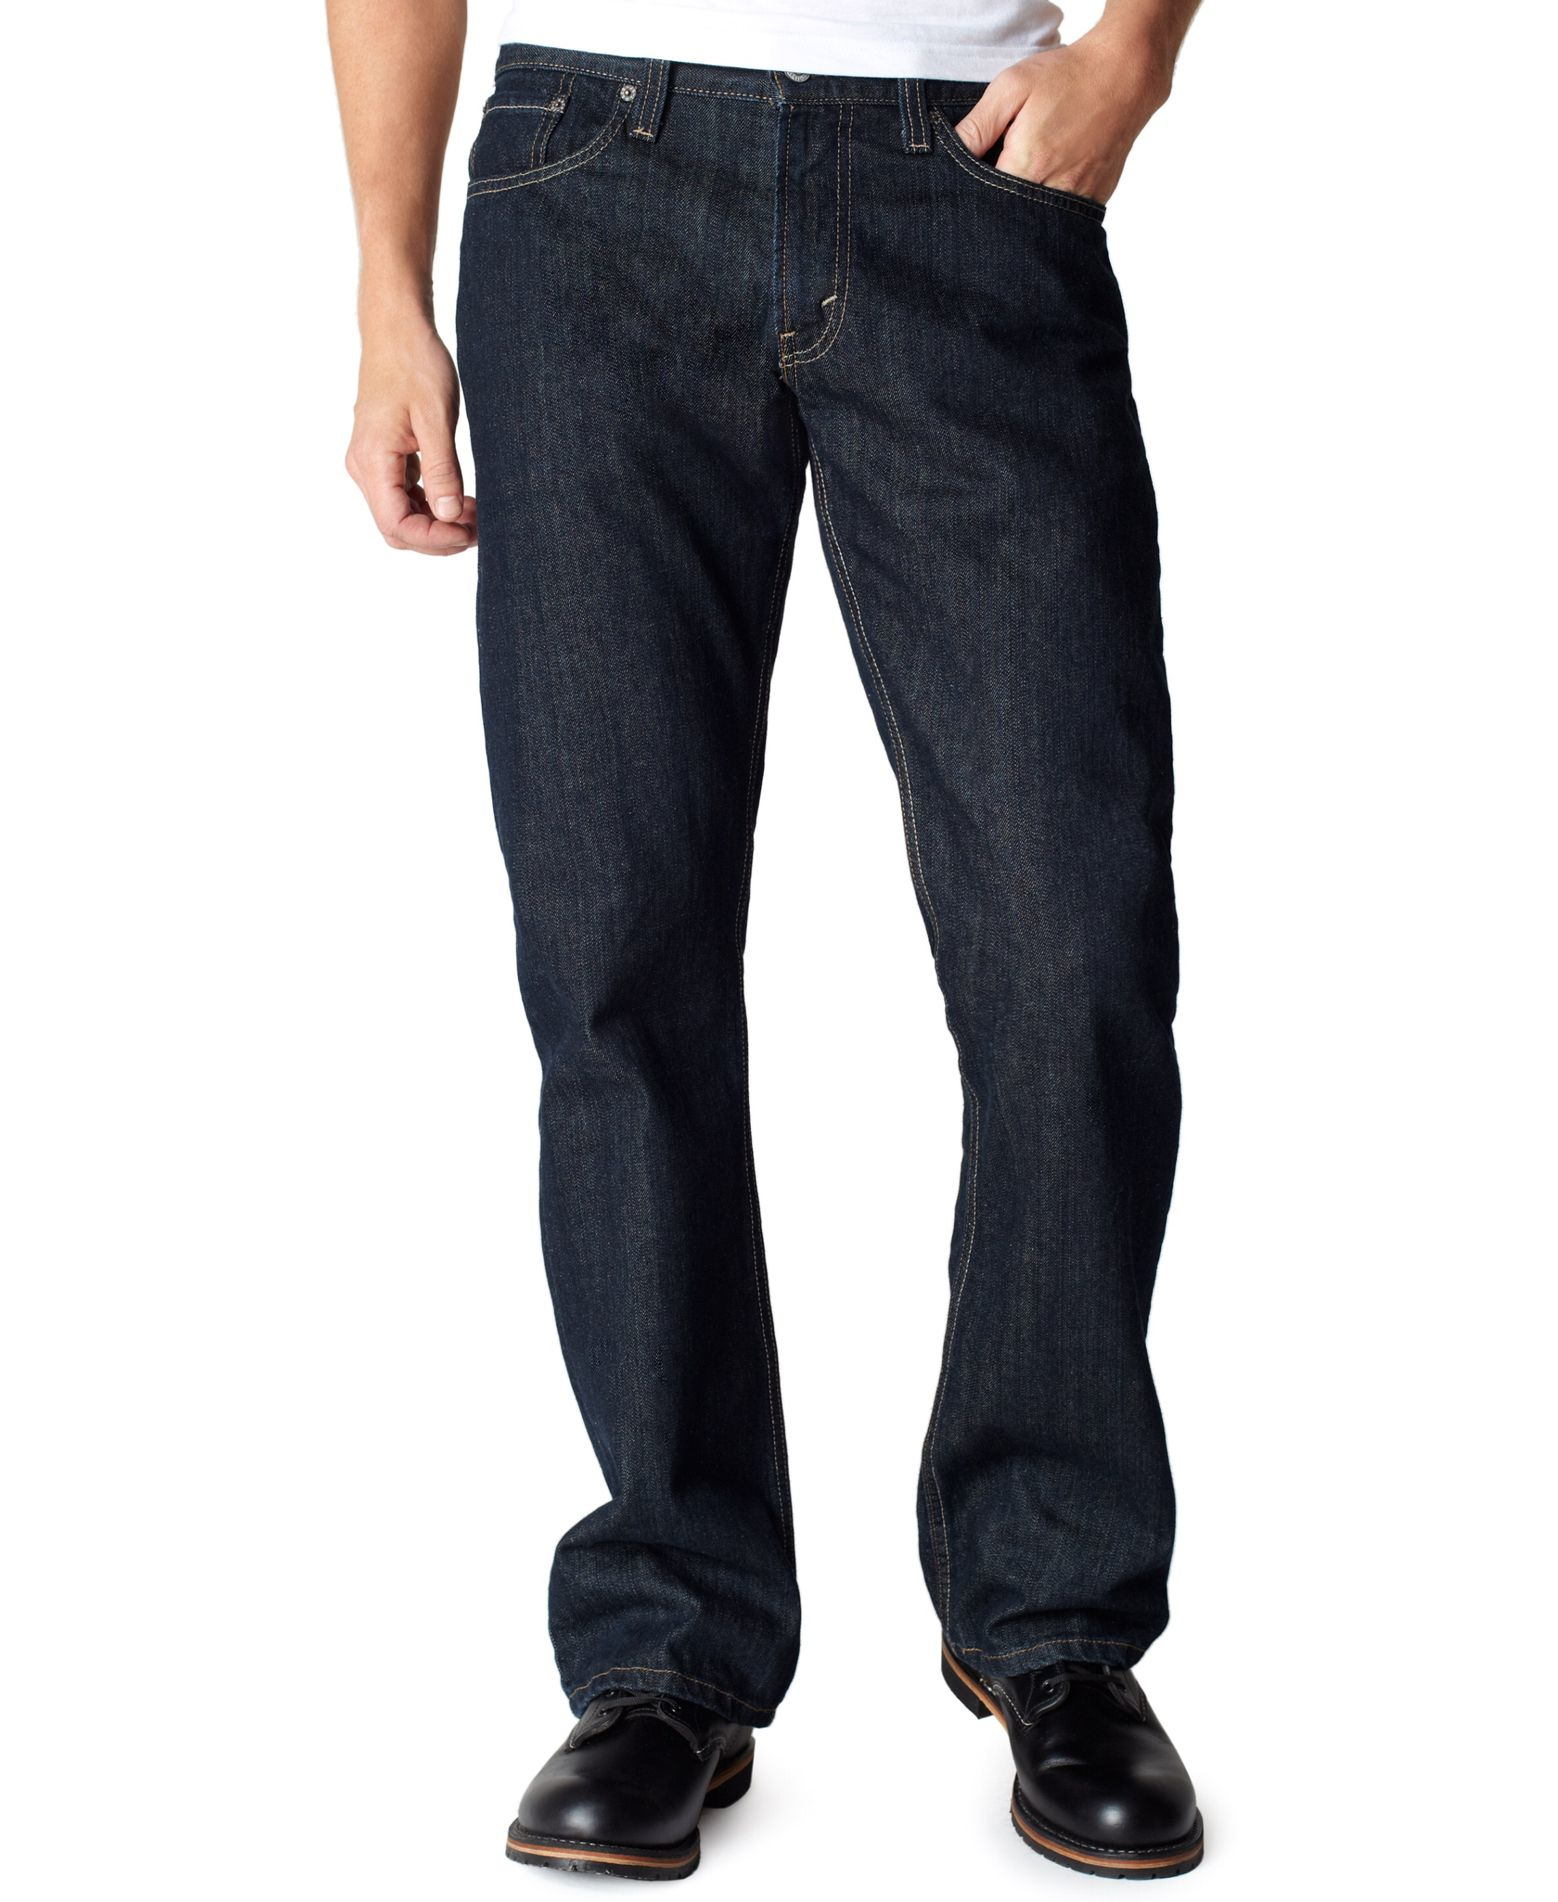 Wrangler Retro® jeans - the Original, but litastmaterlo.gq Wrangler Retro® Slim Fit jean offers a bootcut leg opening, classic five pocket styling and sits low on the waist. It's an update on the classic, featuring the